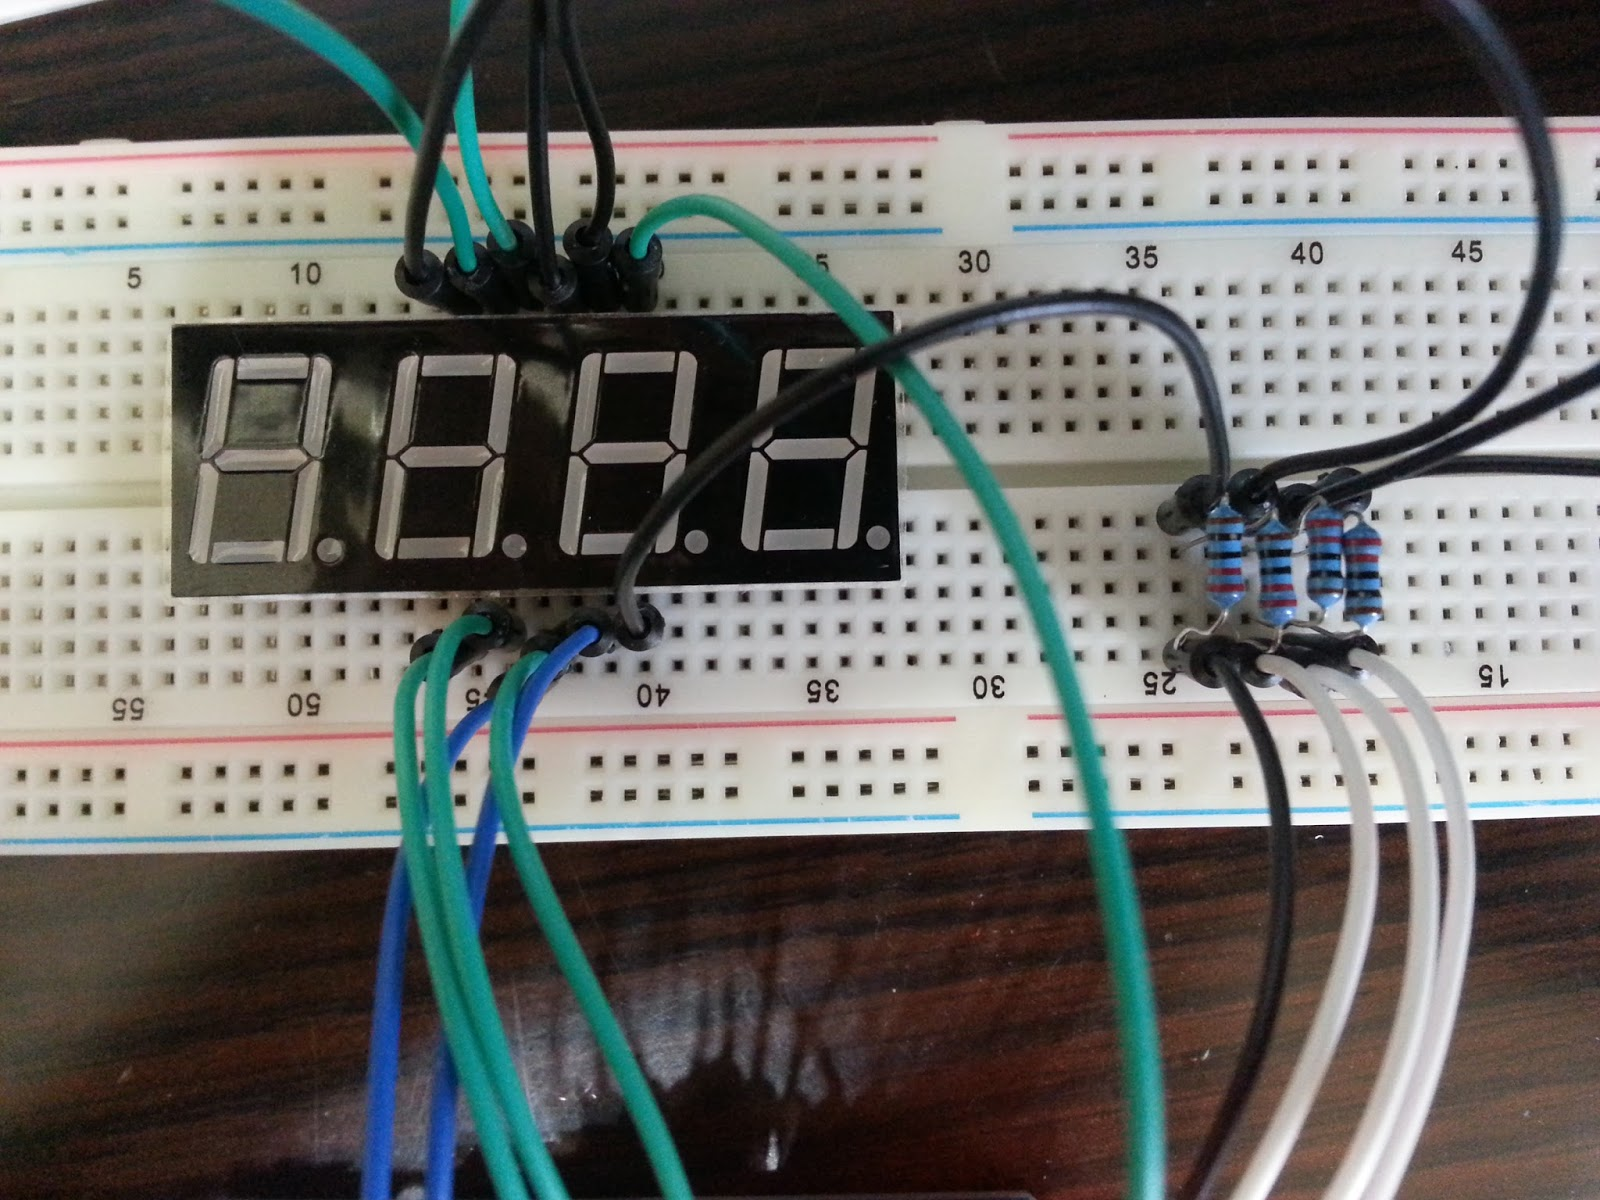 alanh0 research blog: Arduino 4-digit-7-segment display counter